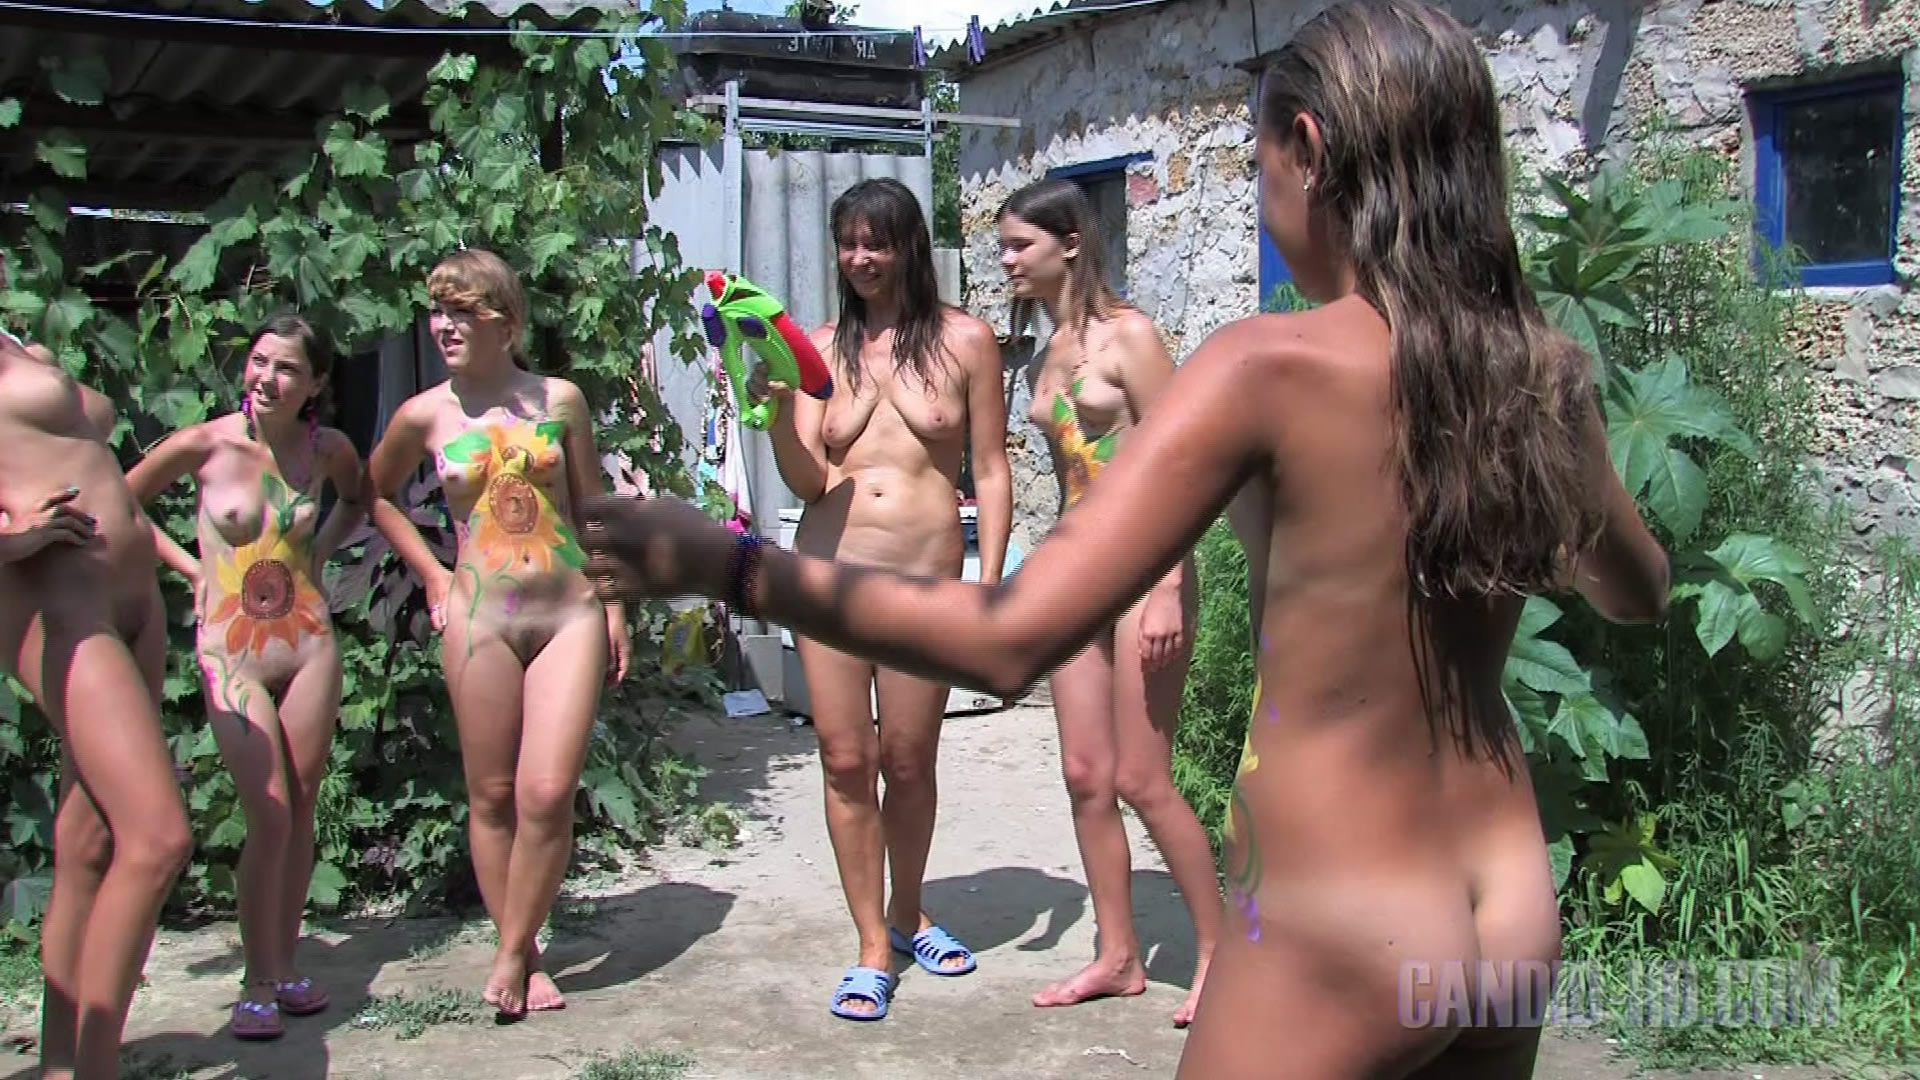 candid-hd » World Site Nudists - NATURISM, FAMILY NUDISM ...